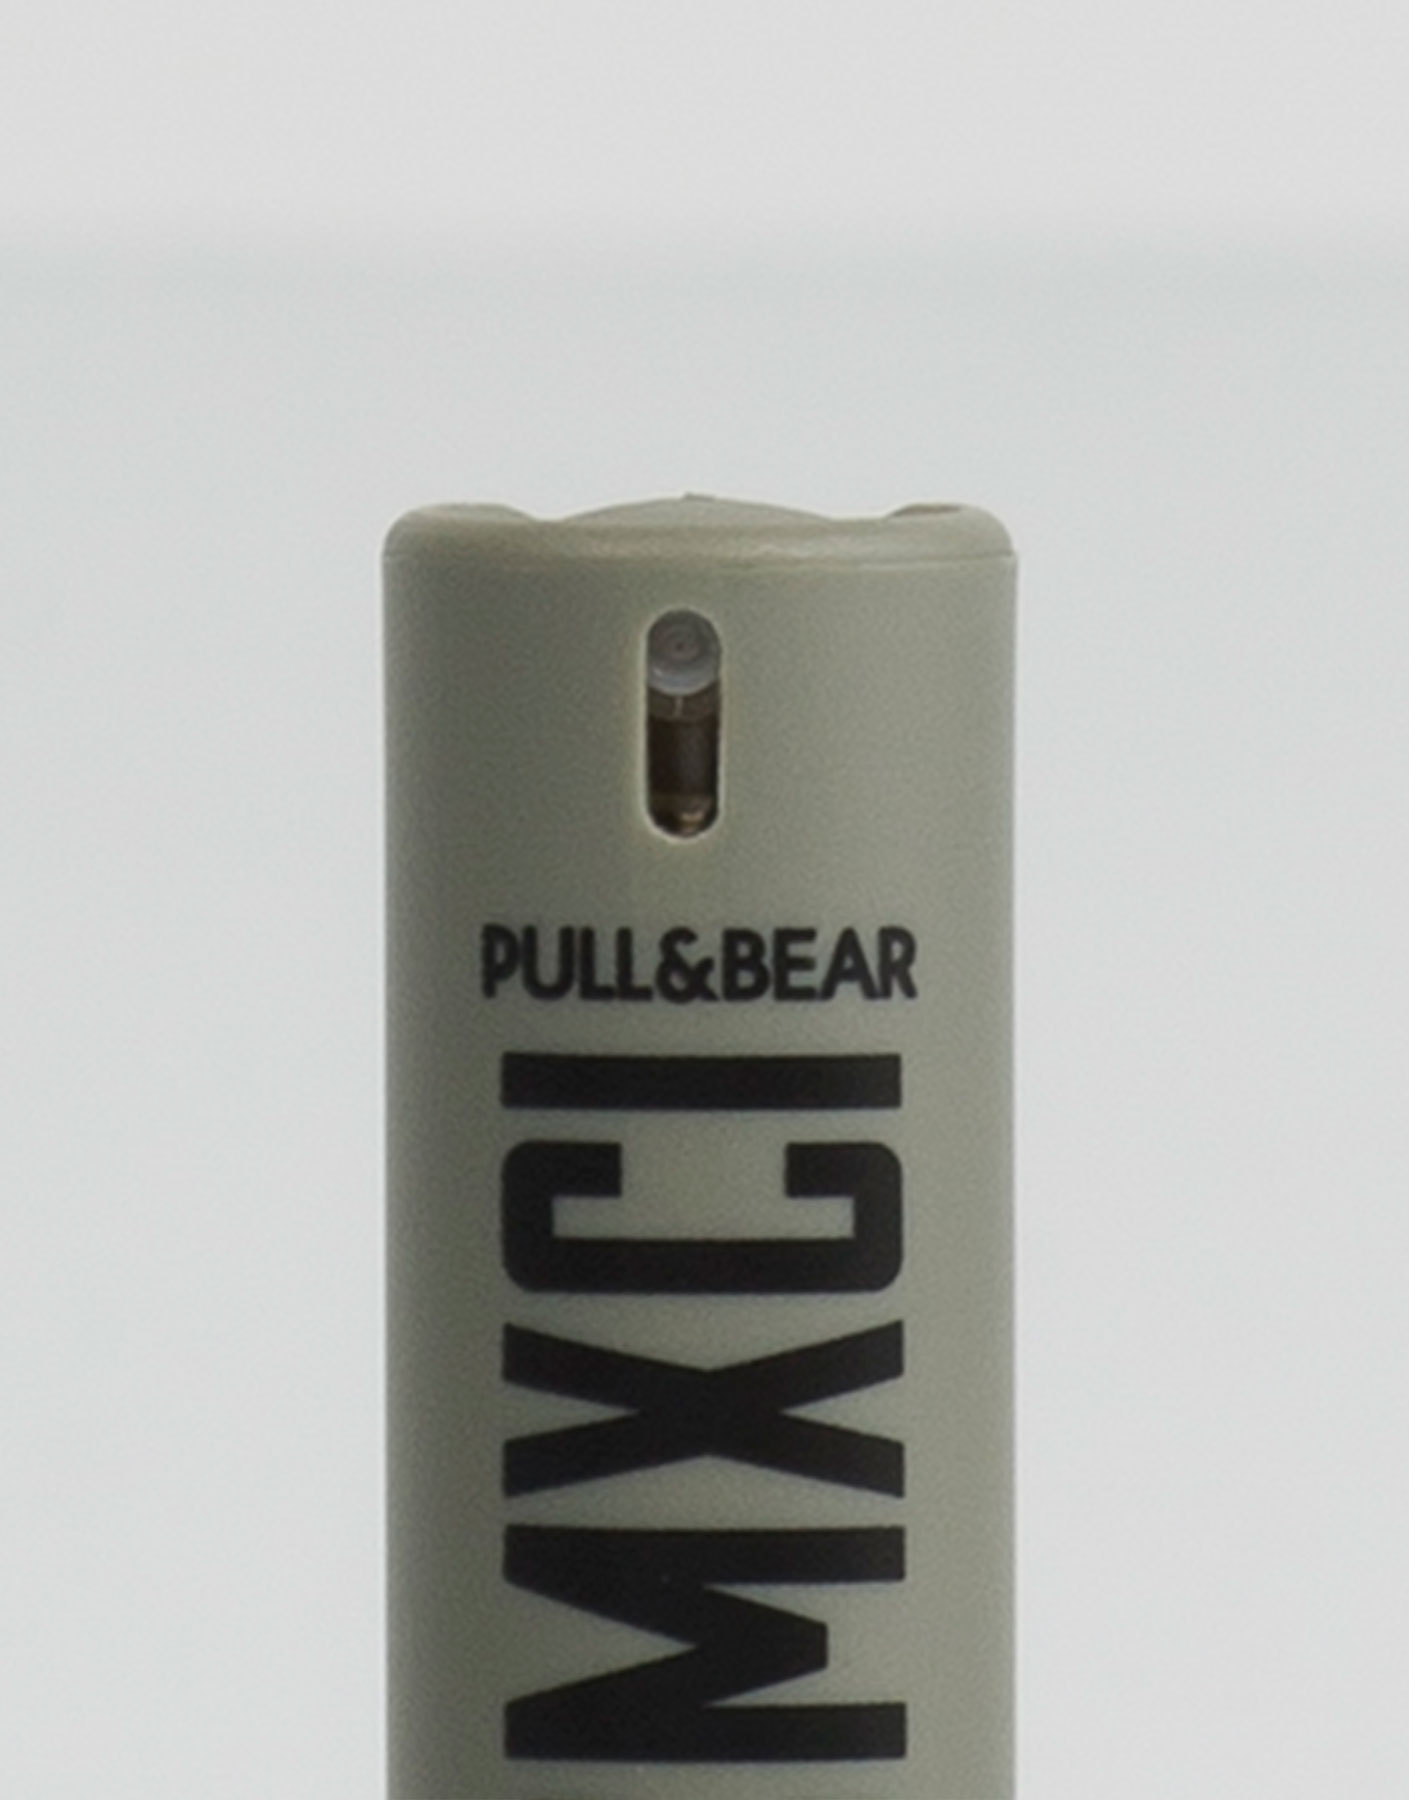 Eau de toilette pull&bear army 15 ml